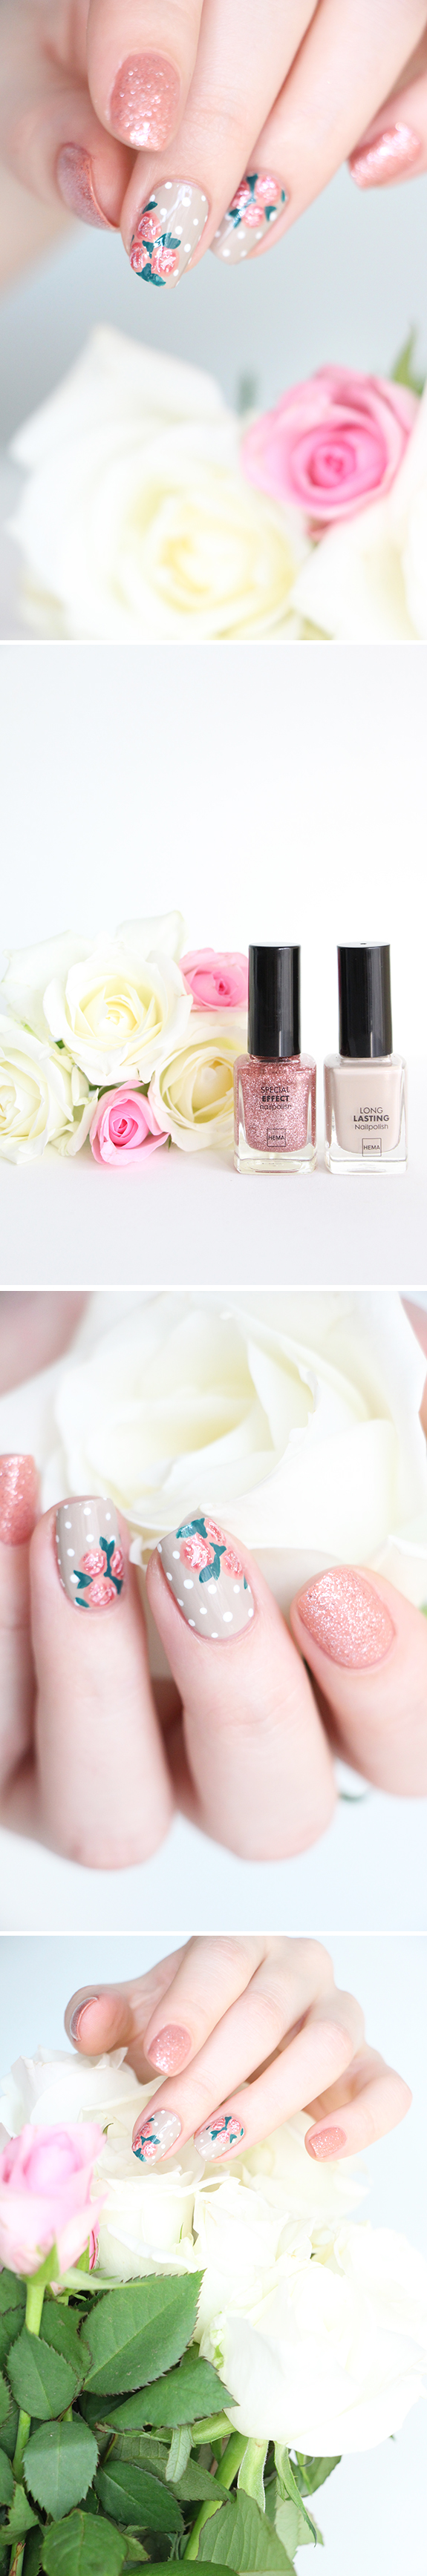 flowers-nails-4